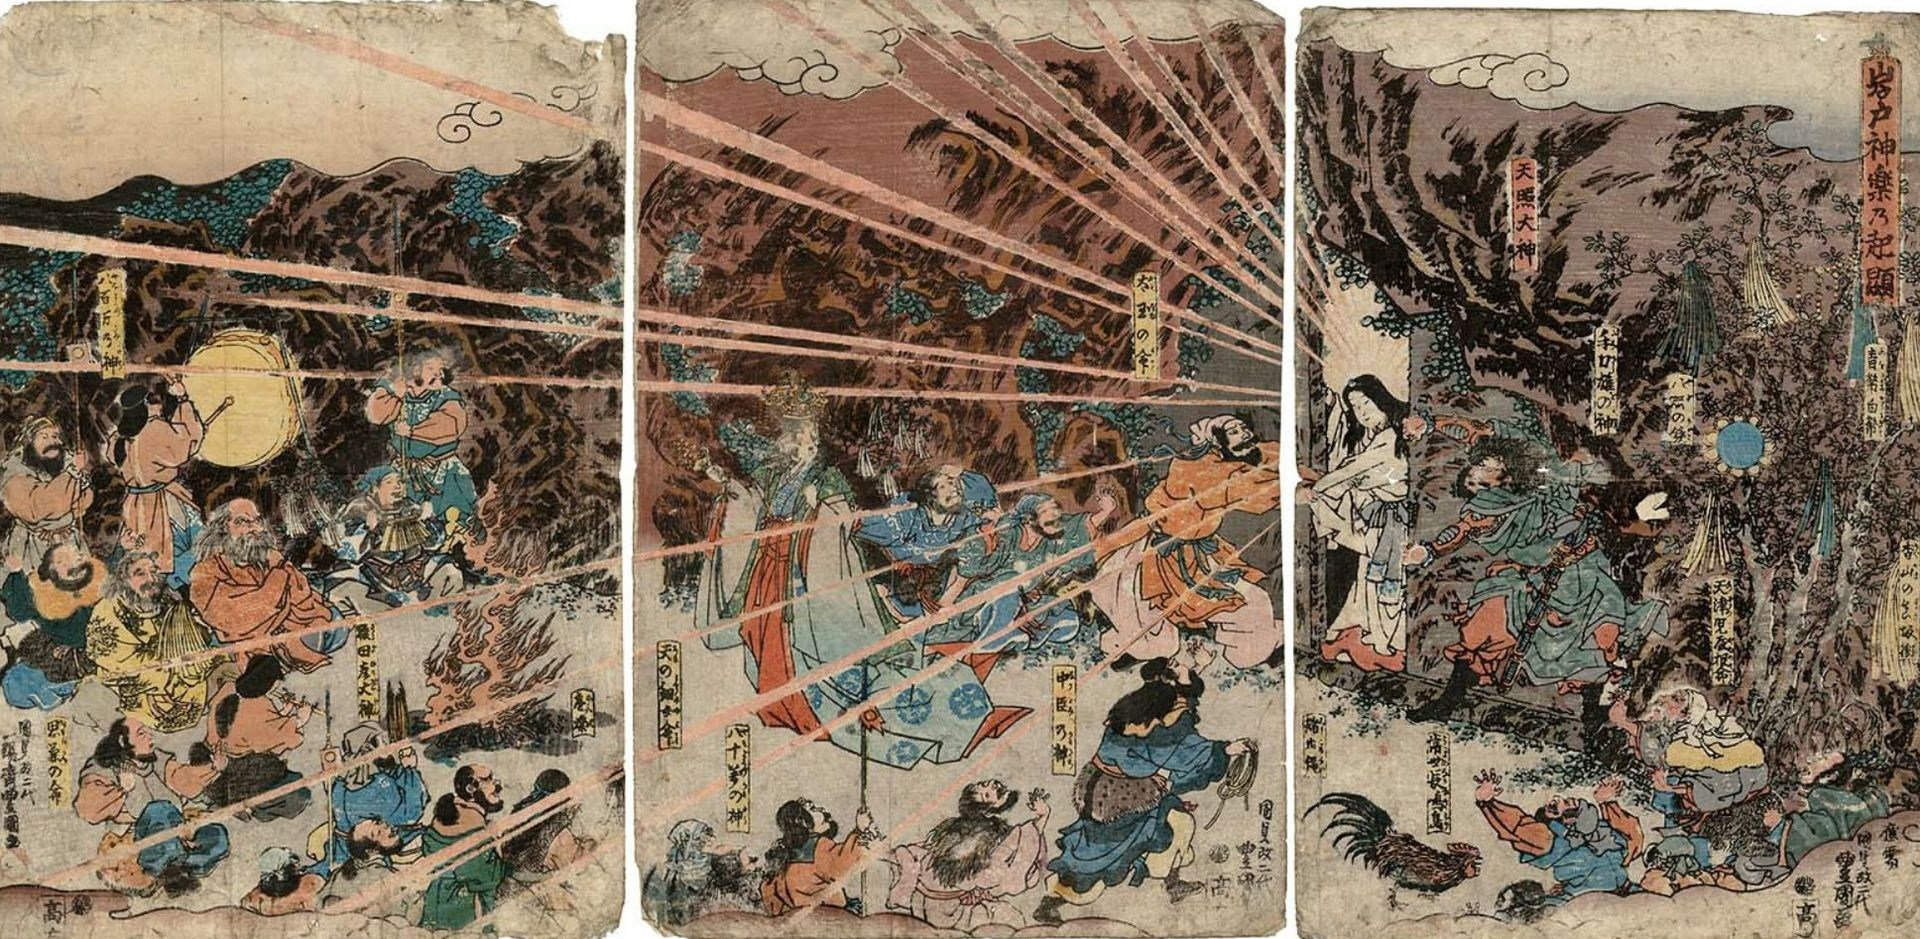 The sun goddess Amaterasu emerges from hiding in a cave after seeing her reflection in the mythical mirror Yata no Kagami Utagawa Kunisada